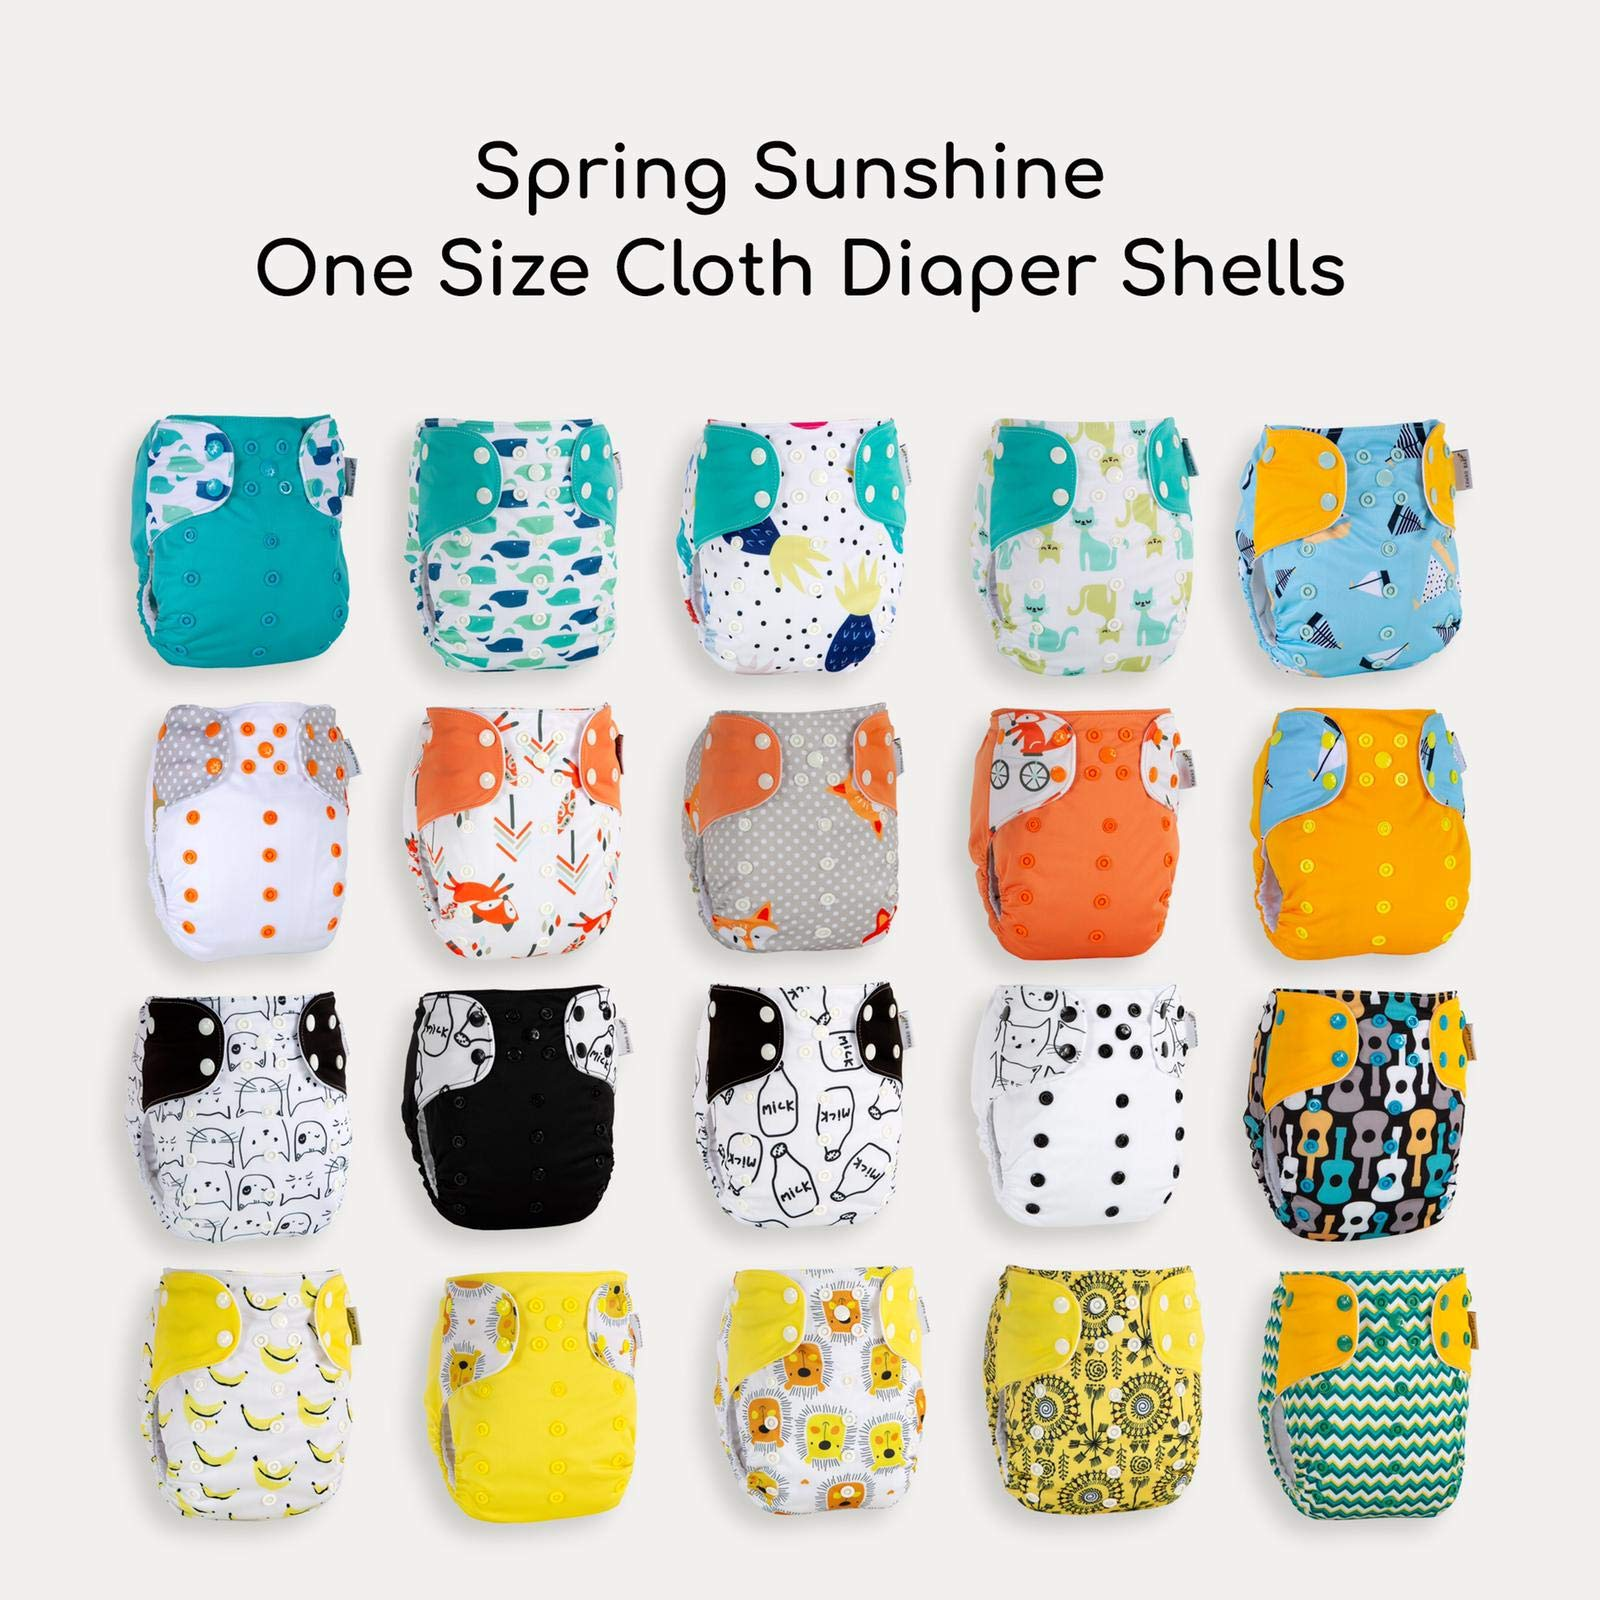 Best Seller! KaWaii Baby 20 One Size Printed Snap Cloth Diaper Shells/Spring Sunshine Theme/Reusable/Newborn to Toddler for baby boy and girl super soft and comfortable, leakproof and one size fit all by Kawaii Baby (Image #1)